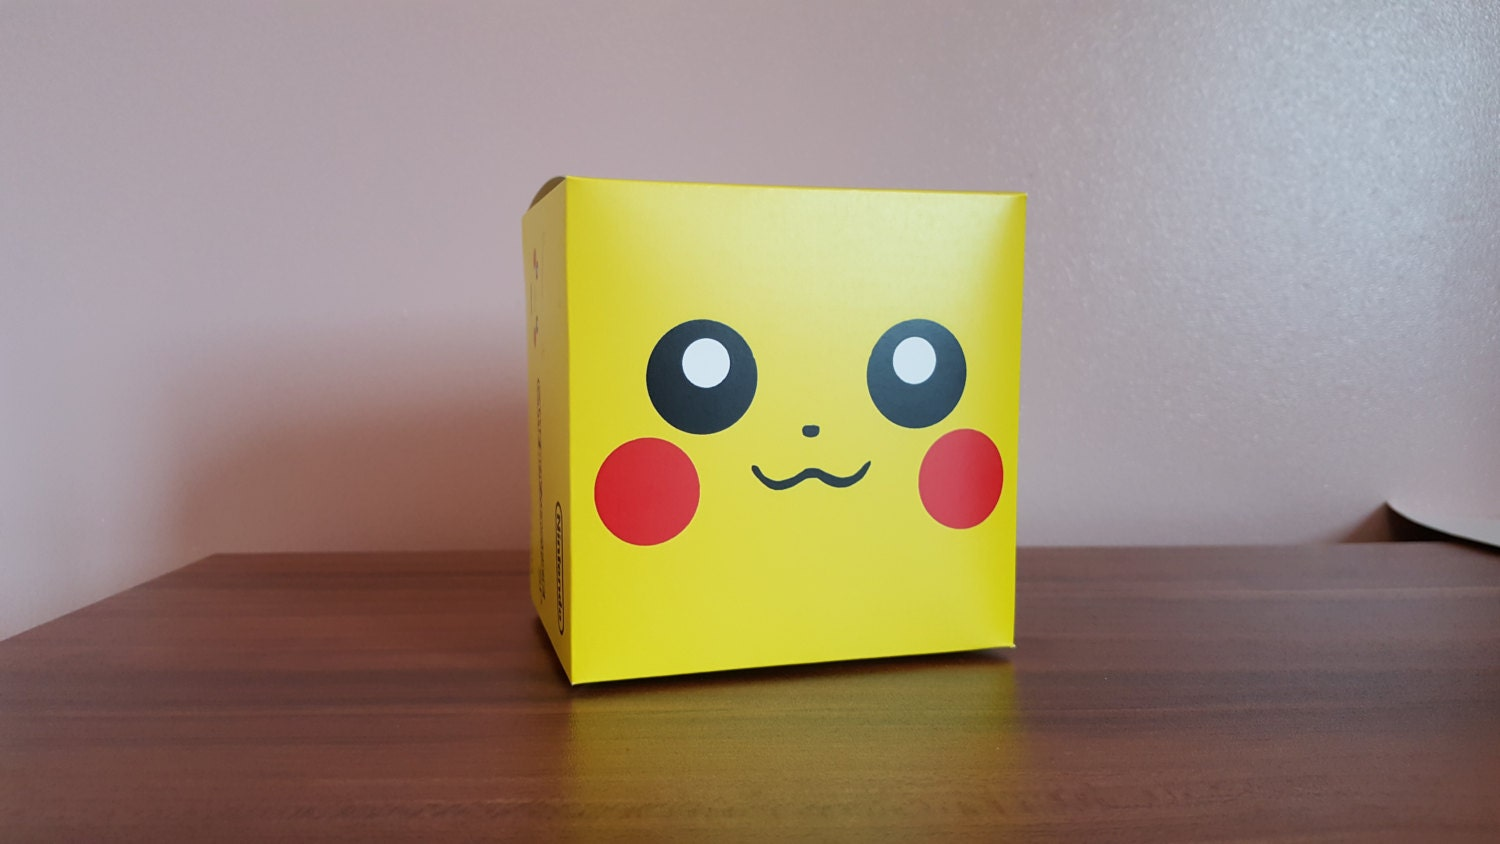 Game Boy Advance SP Console Box  Custom Pikachu Edition Repo Box Only